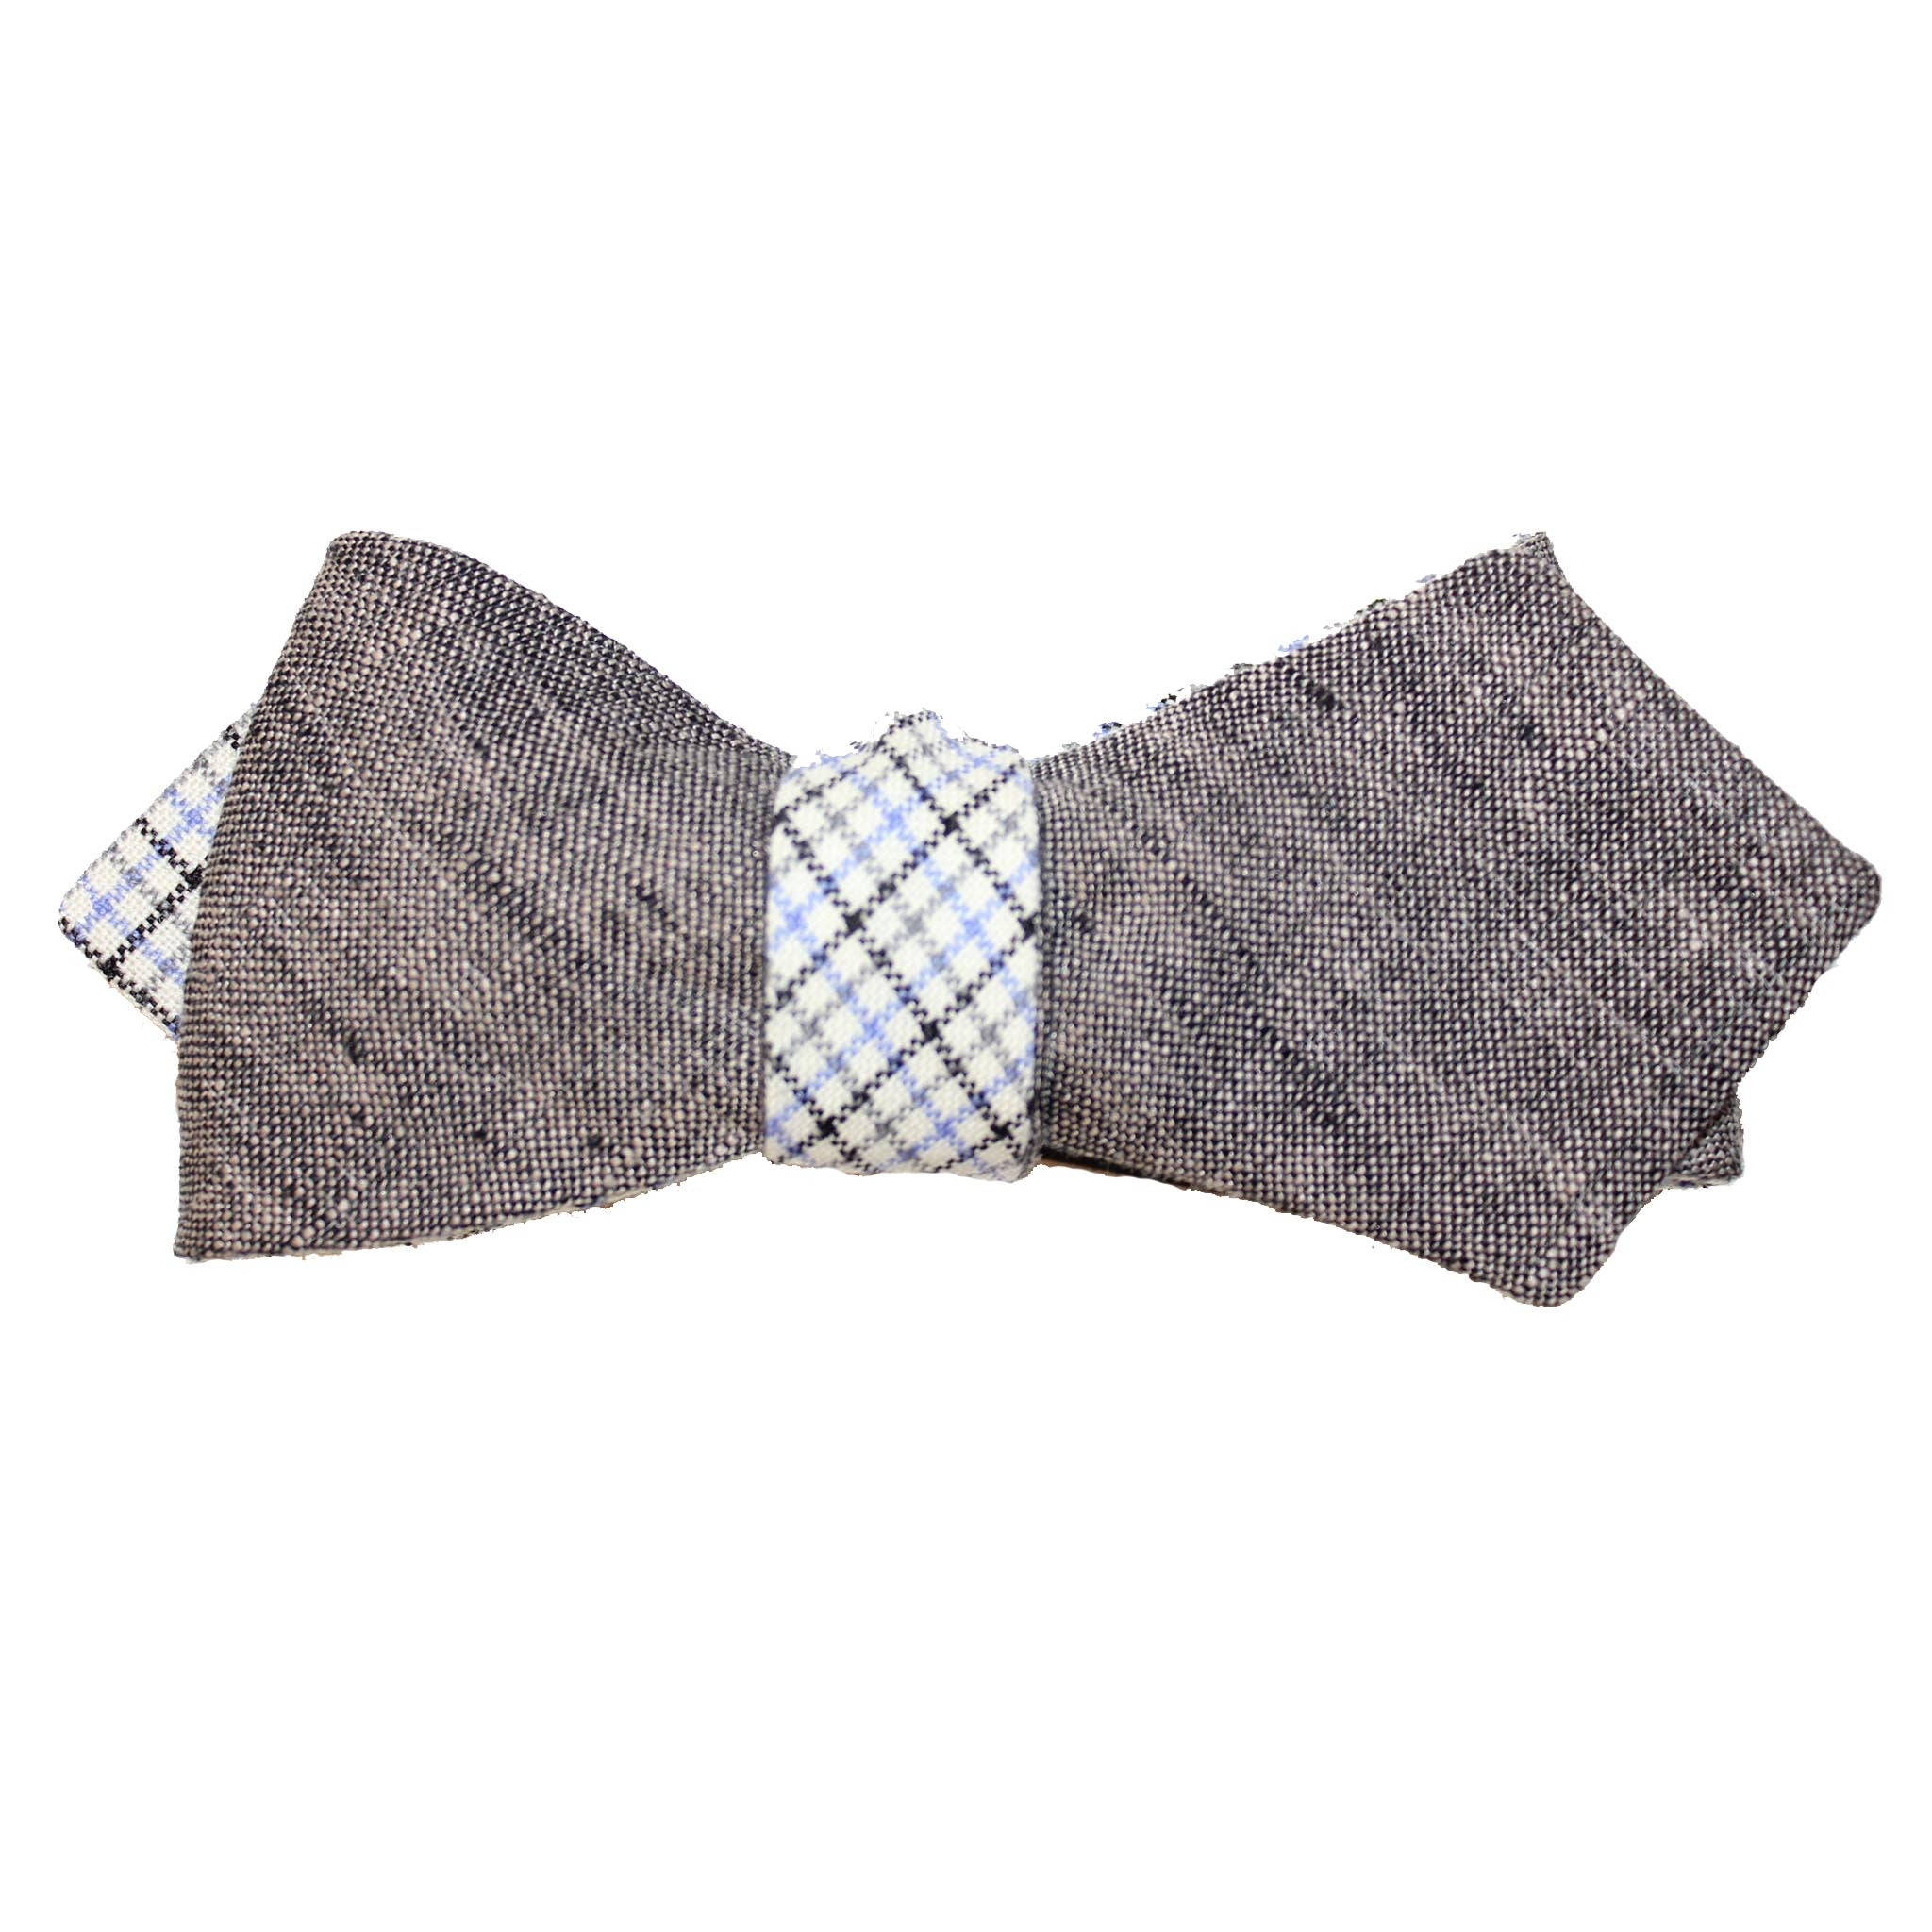 gray Irish linen and Italian wool bow tie